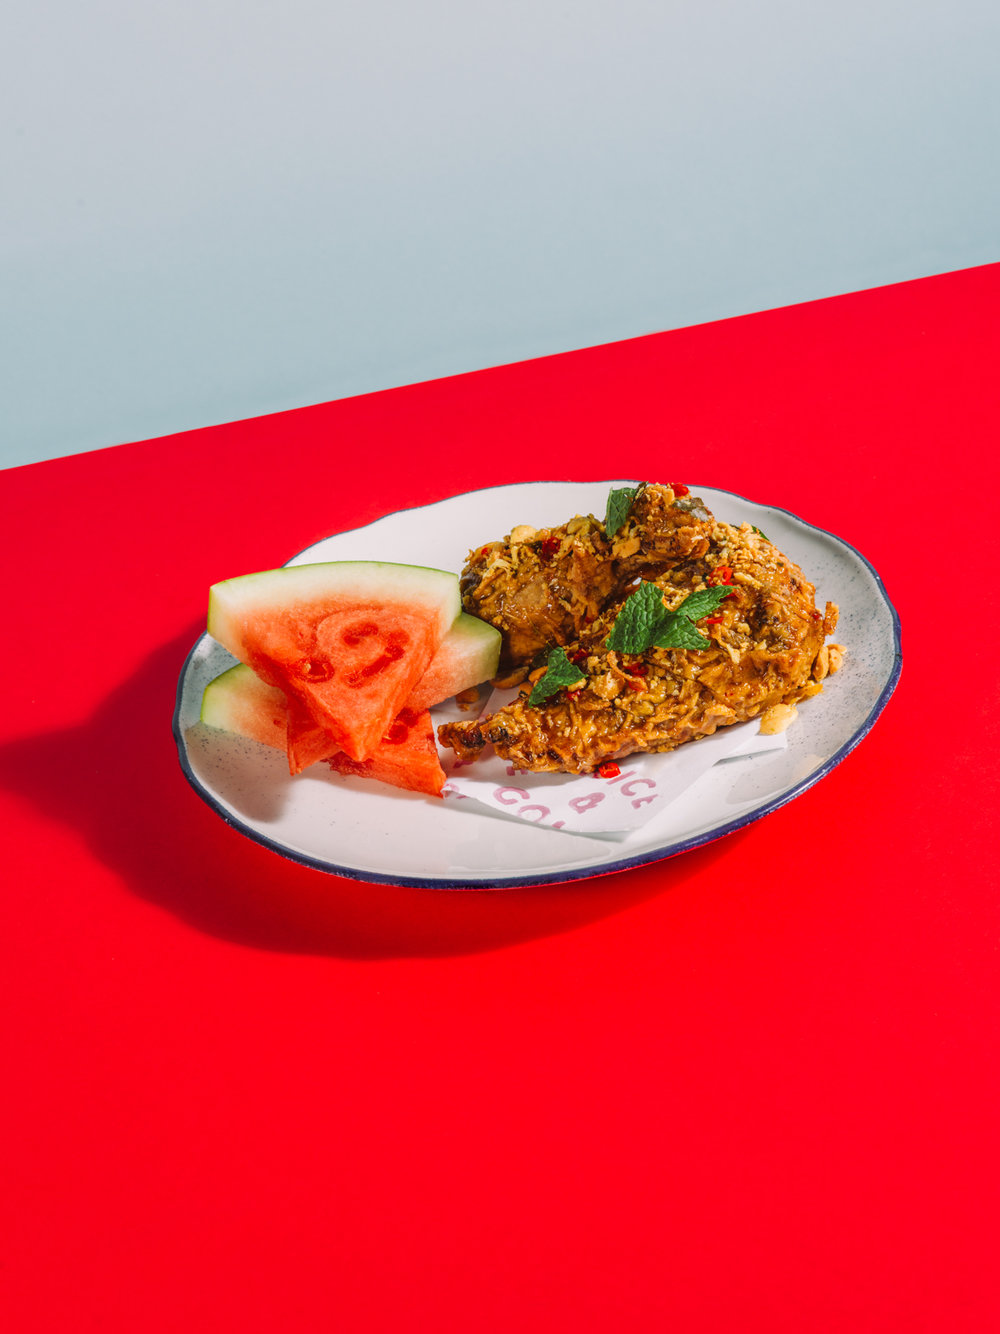 Rice-and-Gold-Food-All-Good-NYC-Nick-Johnson-Photography-18.JPG